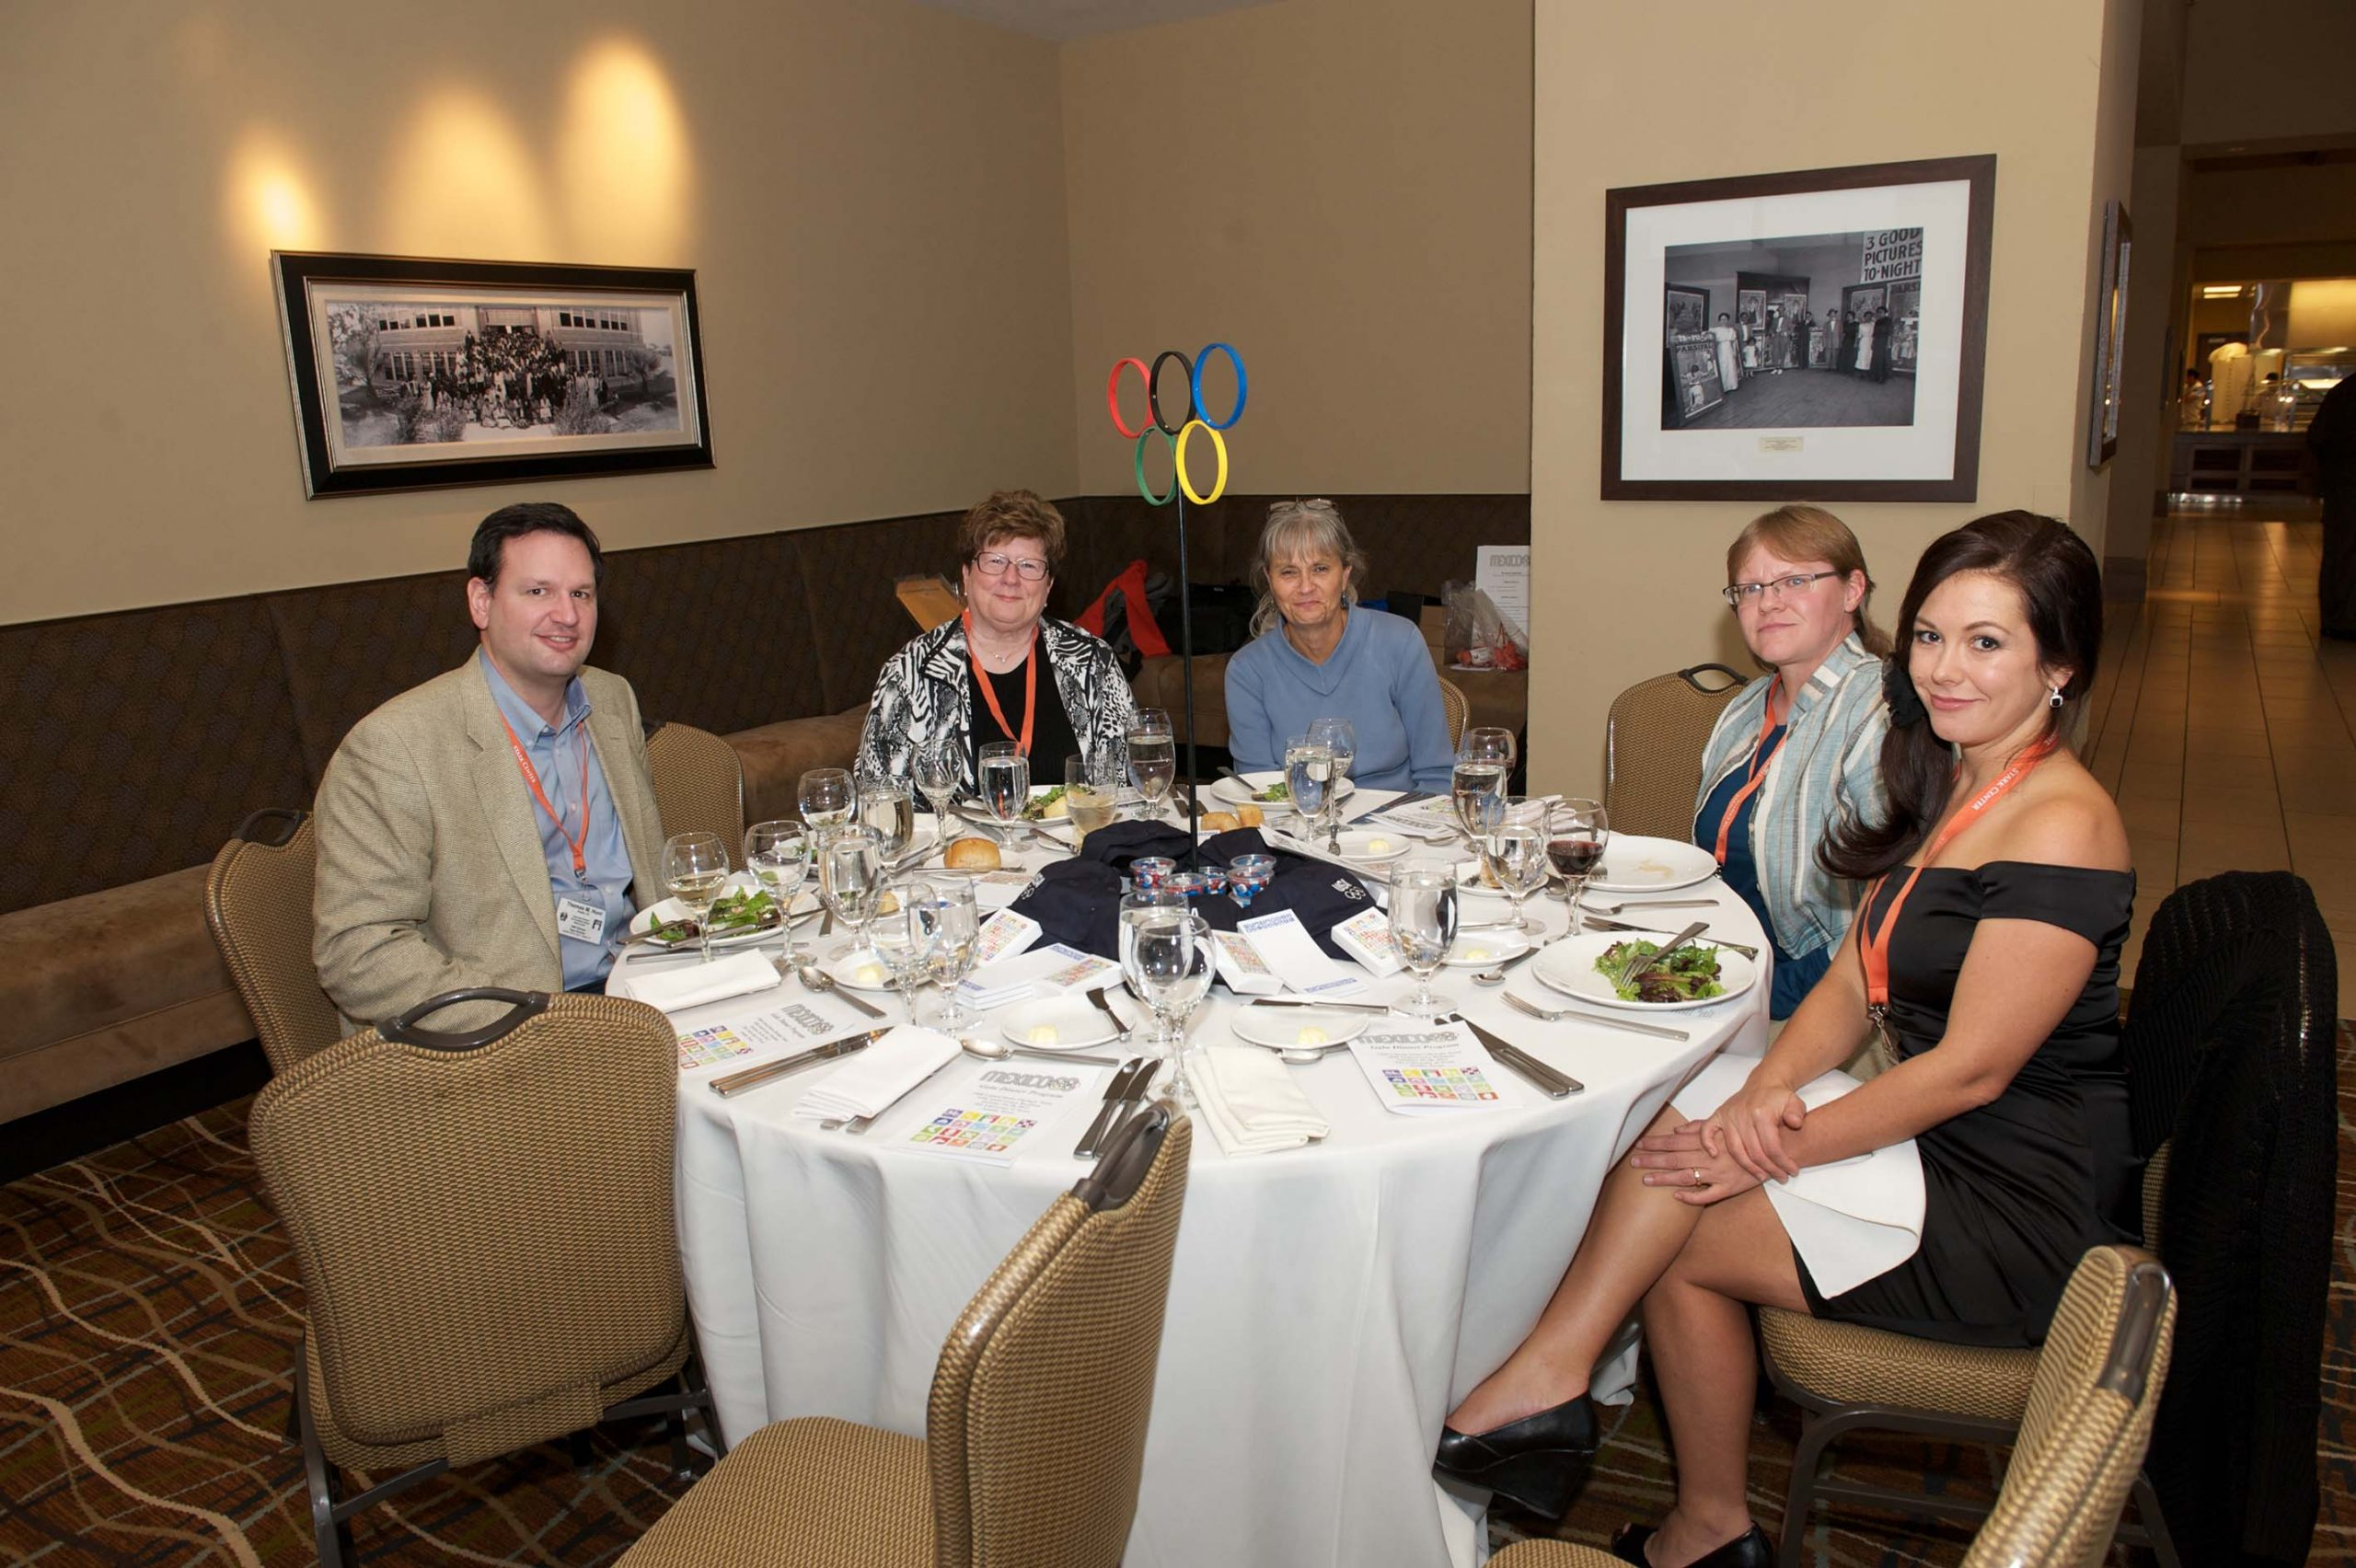 Thomas M. Hunt, a woman, Cindy Slater, Kim Beckwith, and Desiree Harguess, at a table at the 1968 U.S. Olympic Team 2012 Reunion.